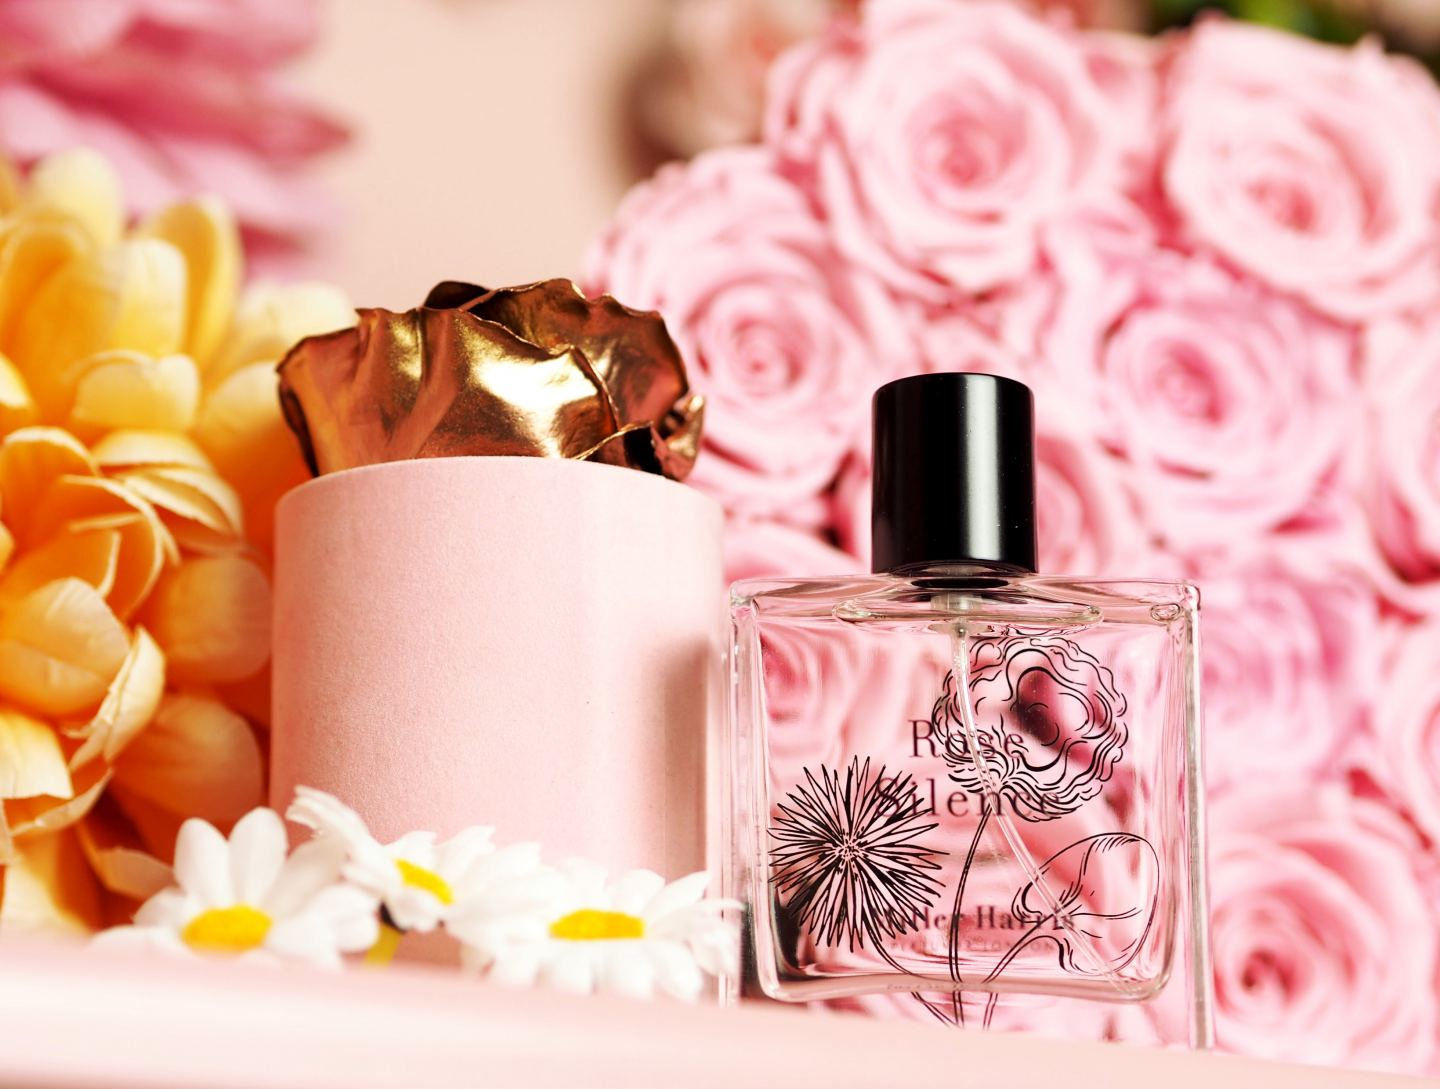 Miller Harris 'Rose Silence' Collection perfume